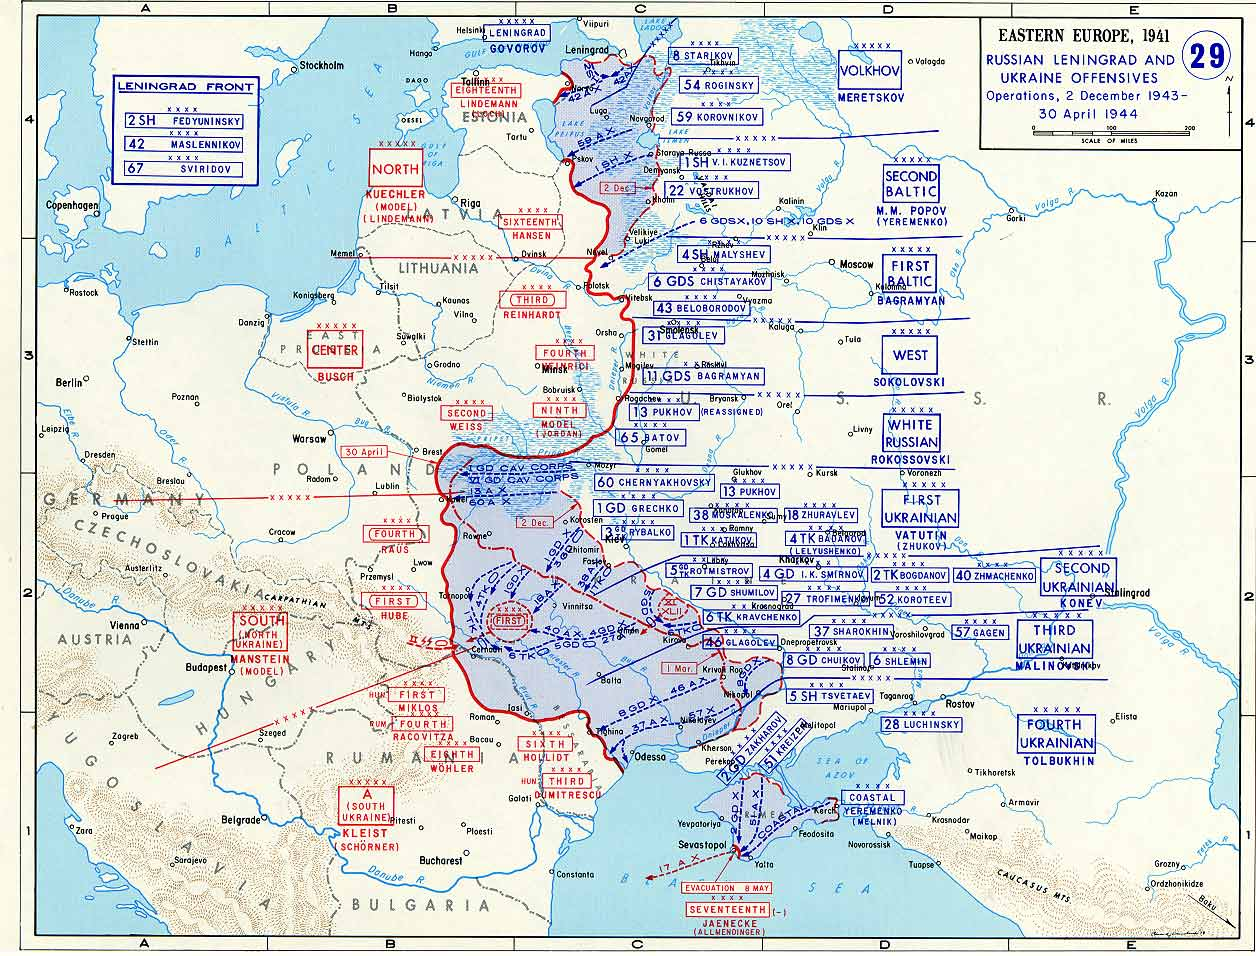 Map of leningrad and ukraine offensives december 1943 april 1944 wwii war theatre maps leningrad and ukraine offensives gumiabroncs Choice Image